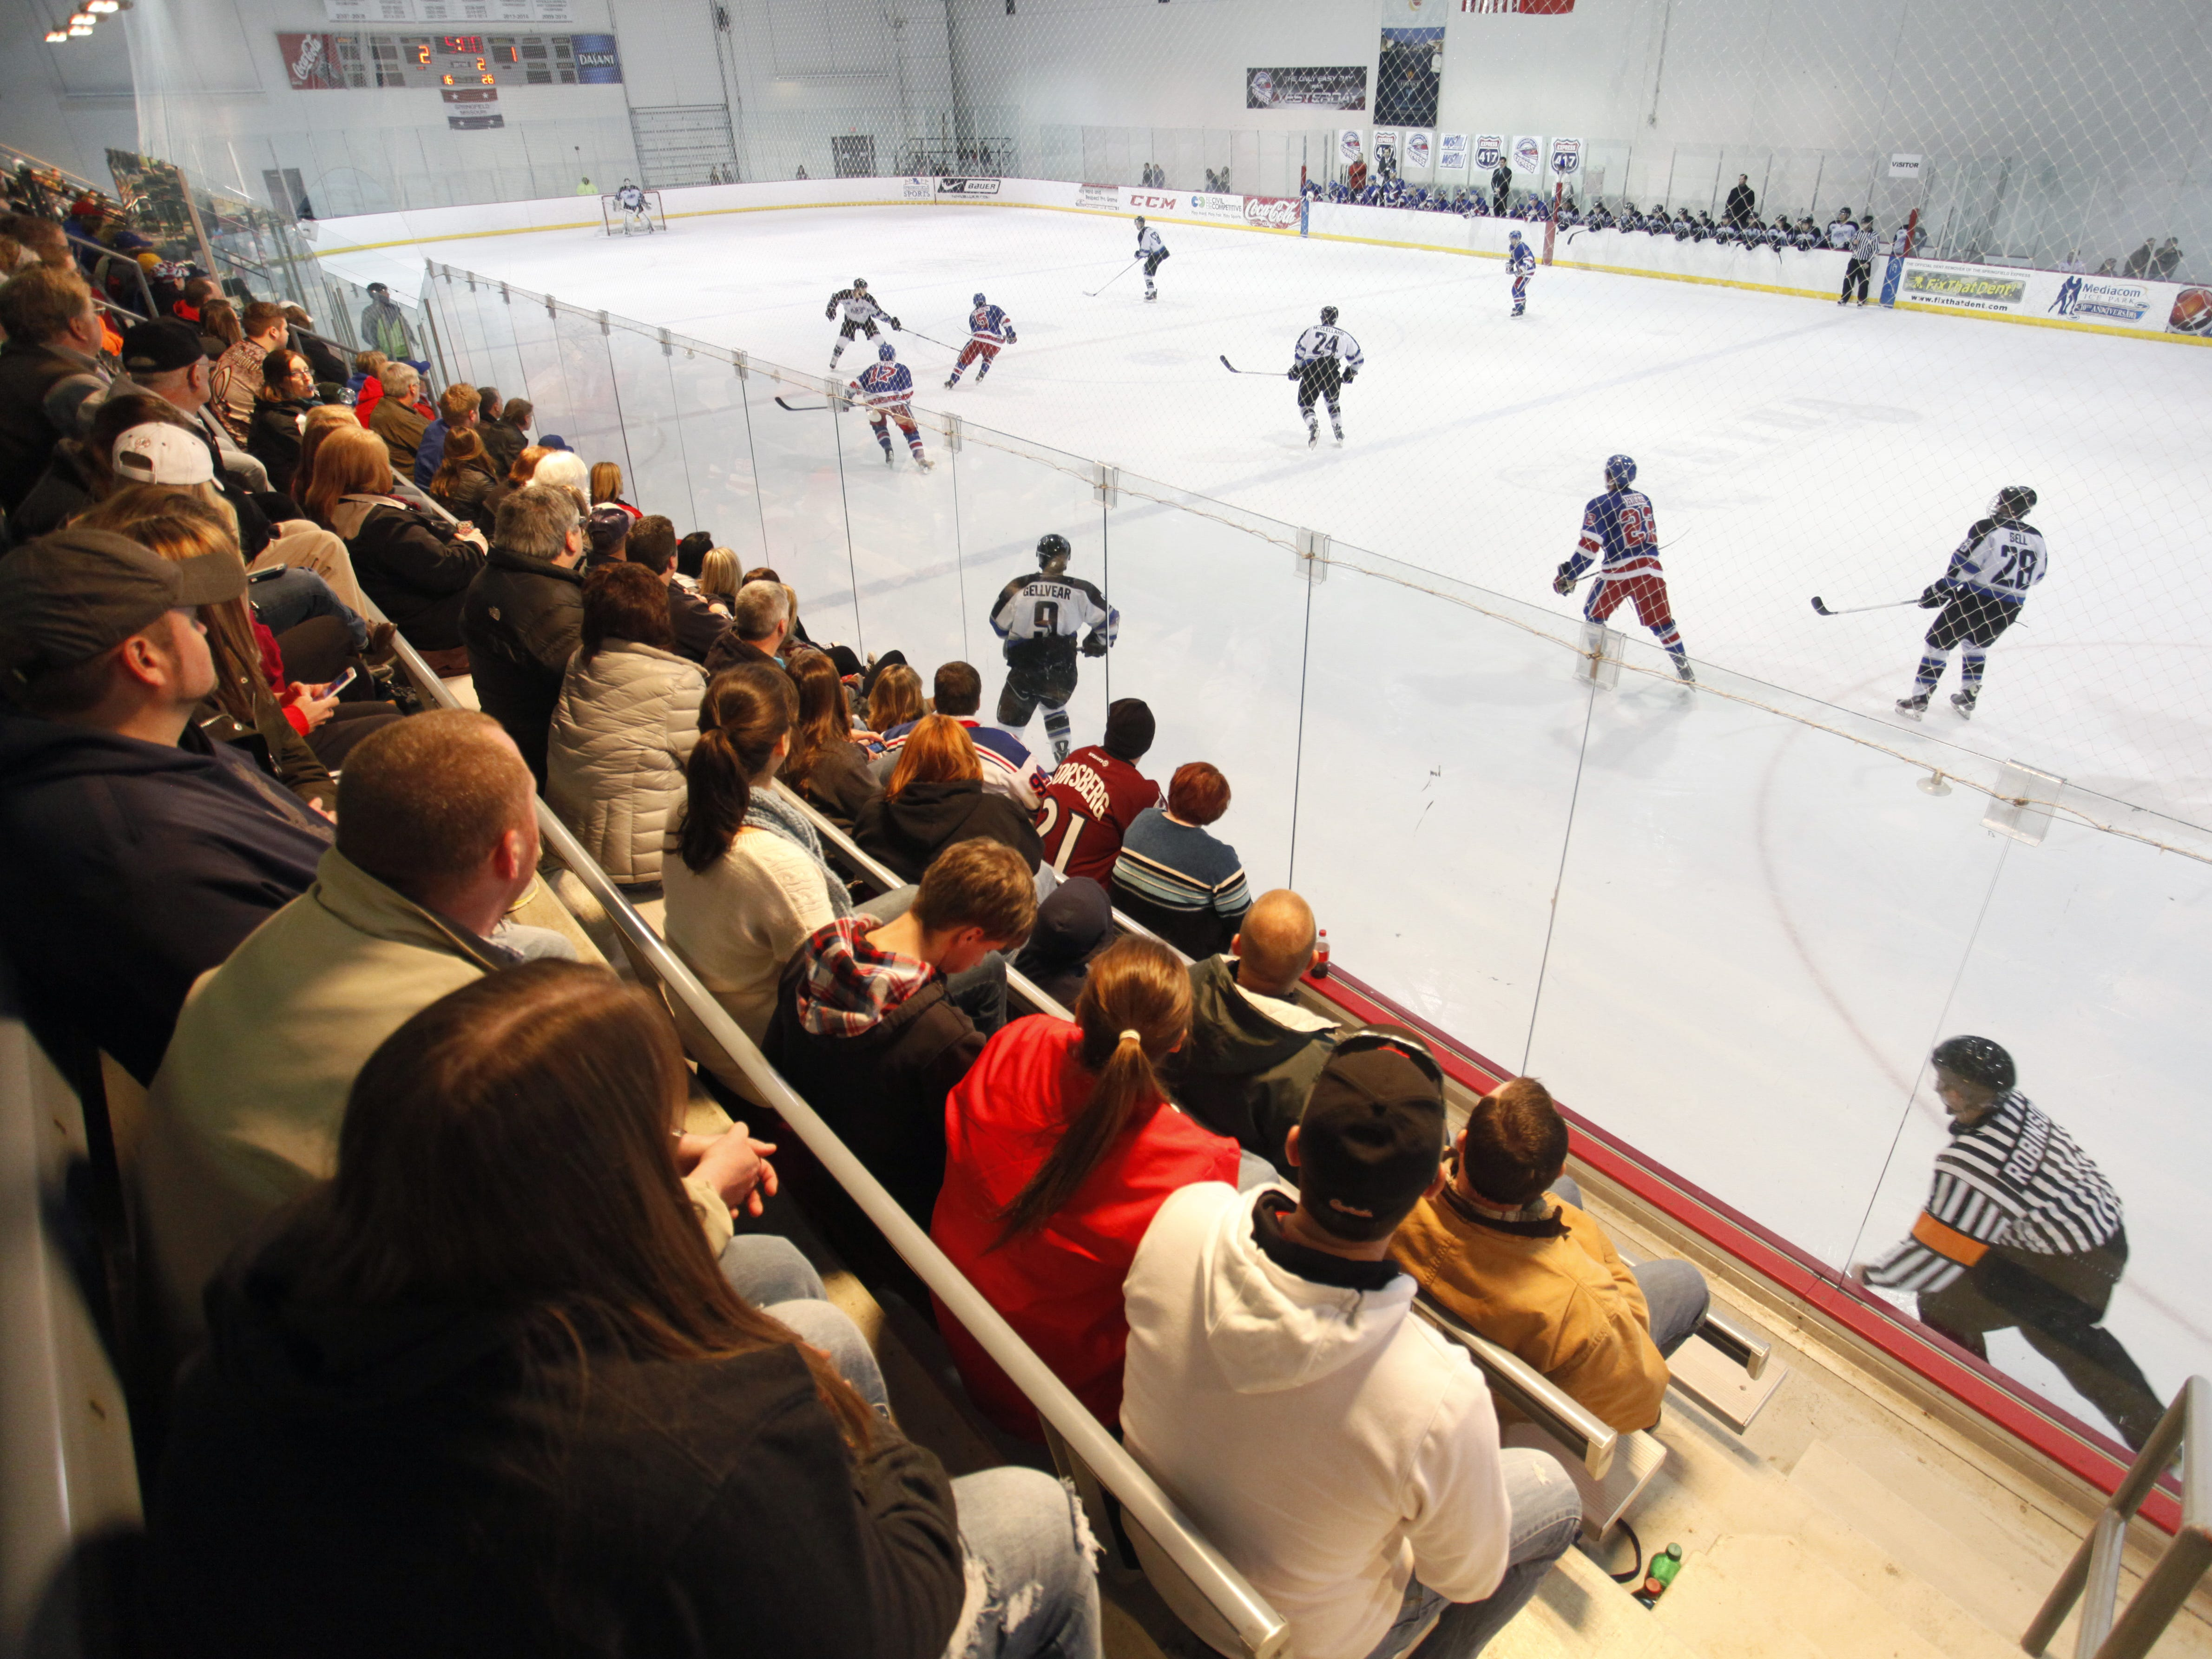 Fans packed the stands for a Springfield Express hockey game agasint the Wichita Jr. Thunder at the Mediacom Ice Park on Friday, Feb. 13, 2015.